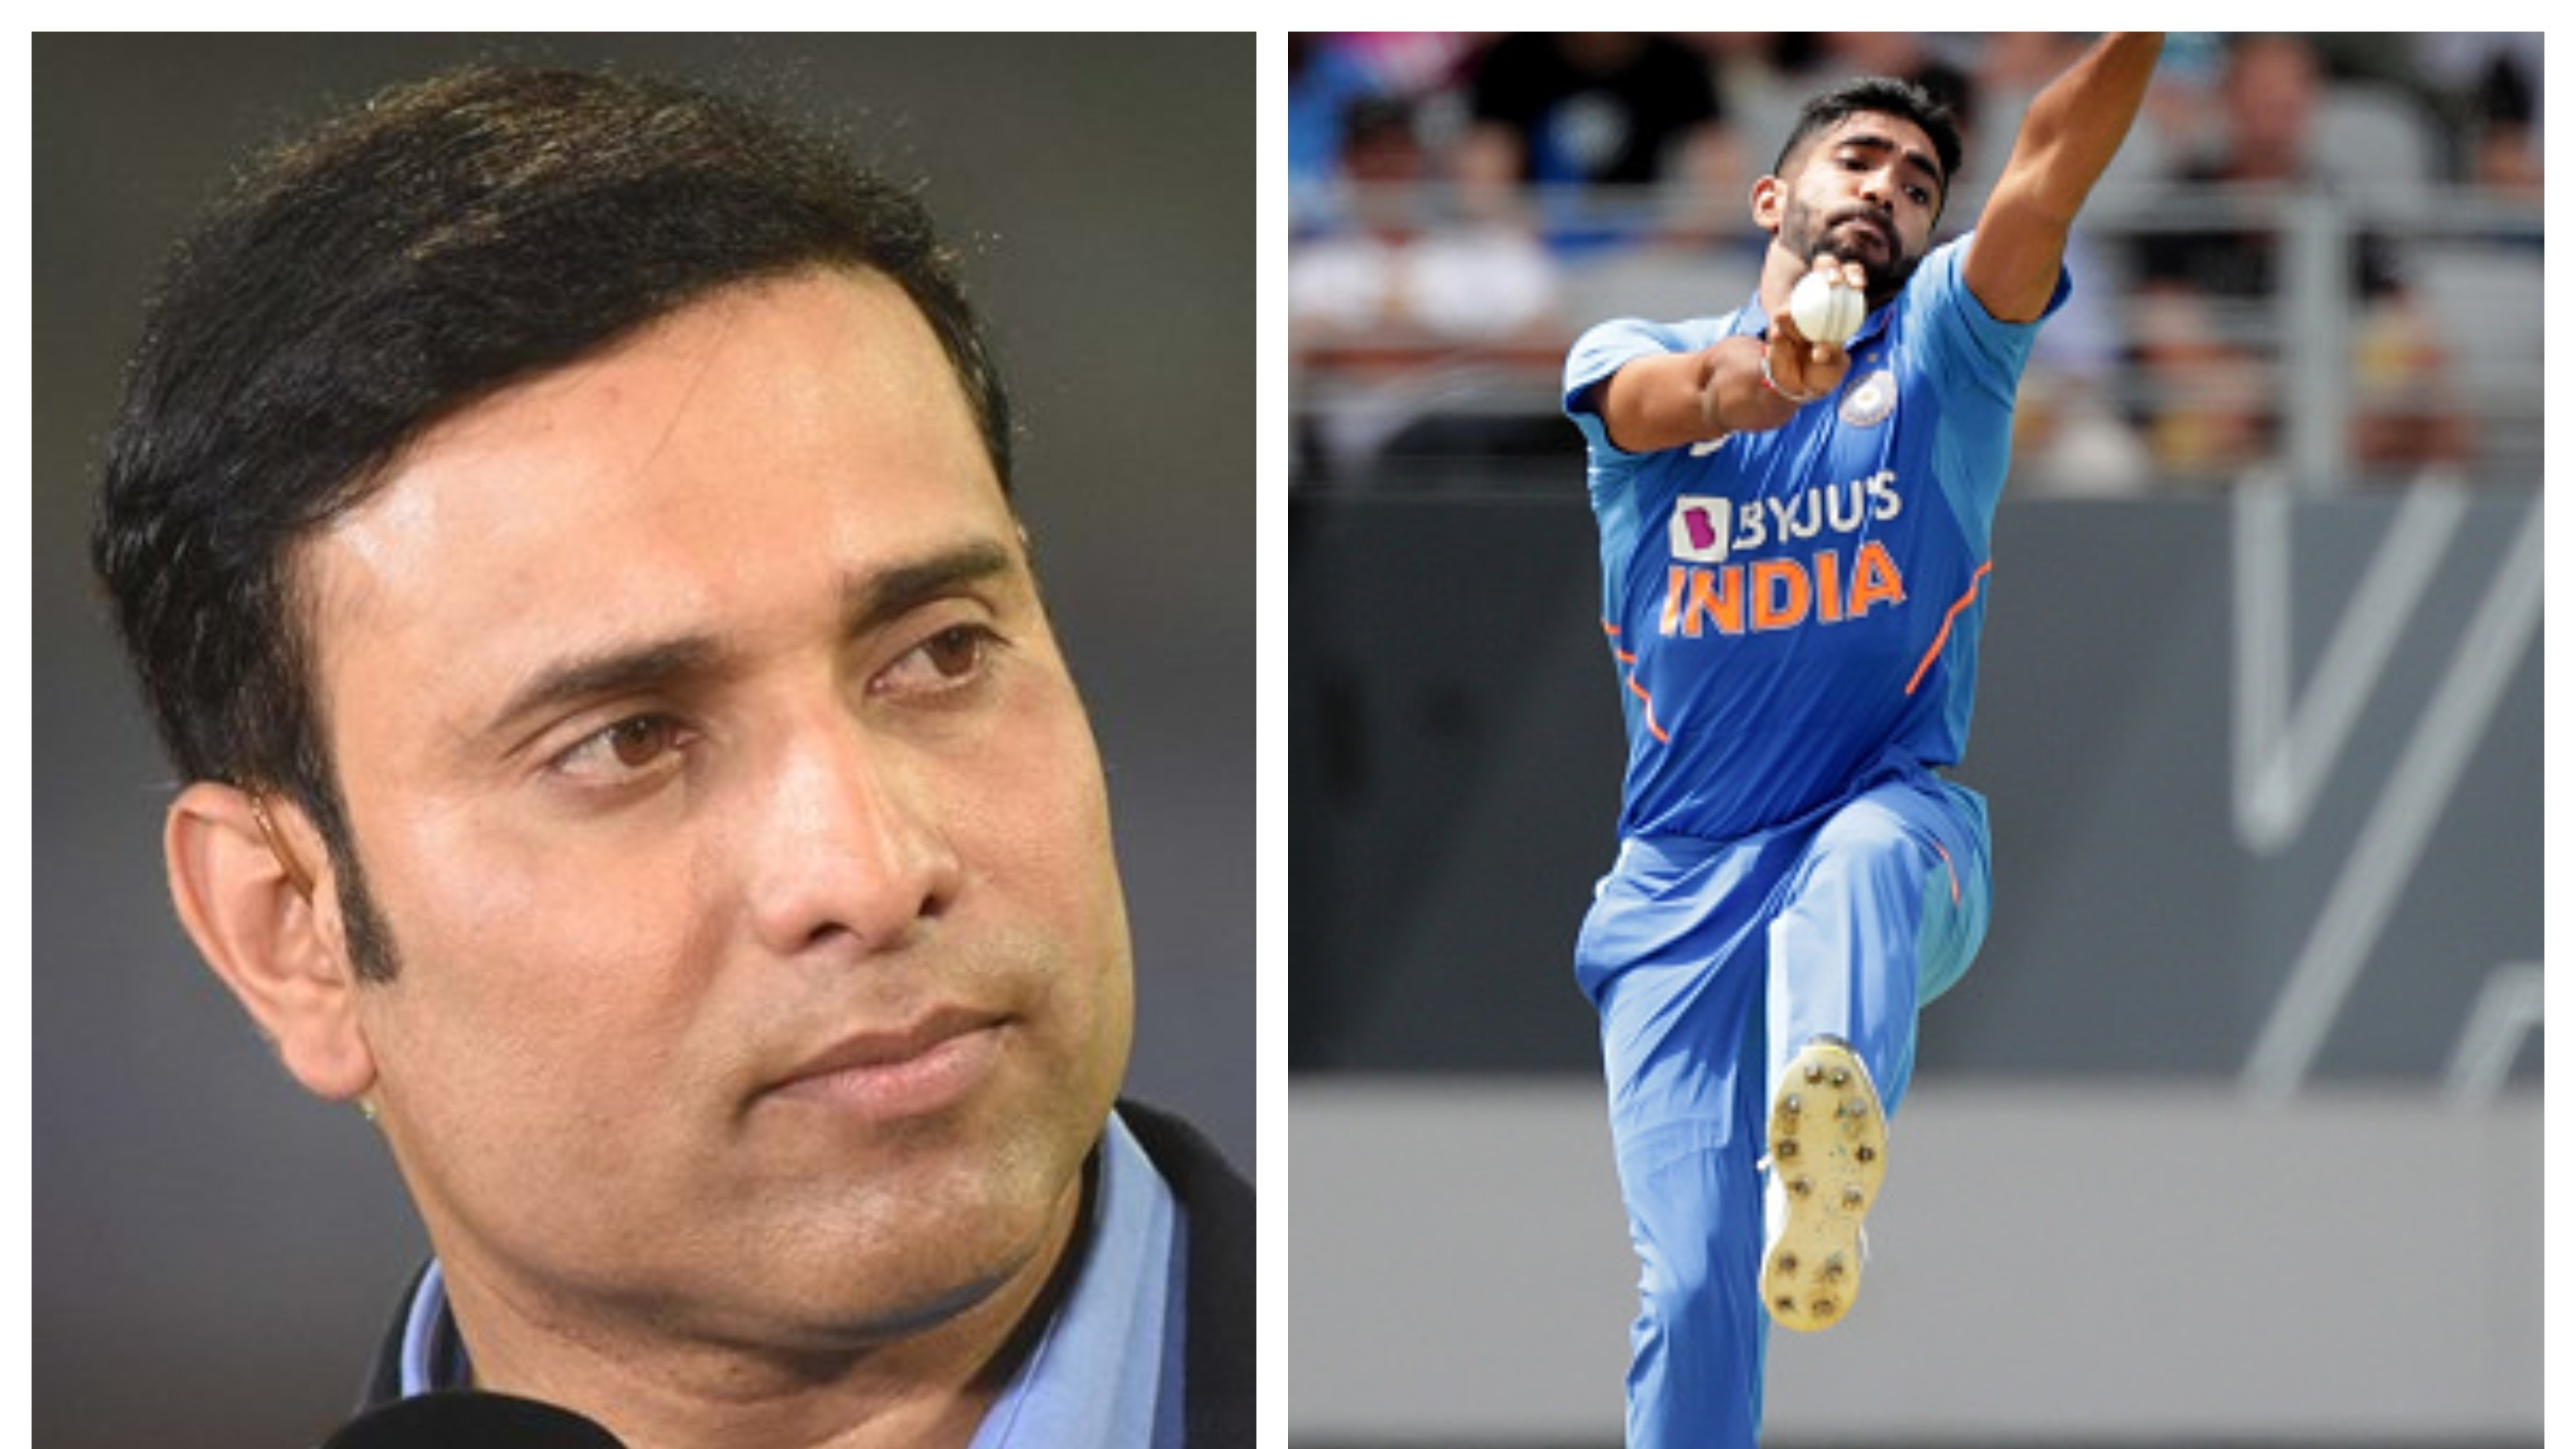 NZ v IND 2020: Laxman deems Bumrah's indifferent form a